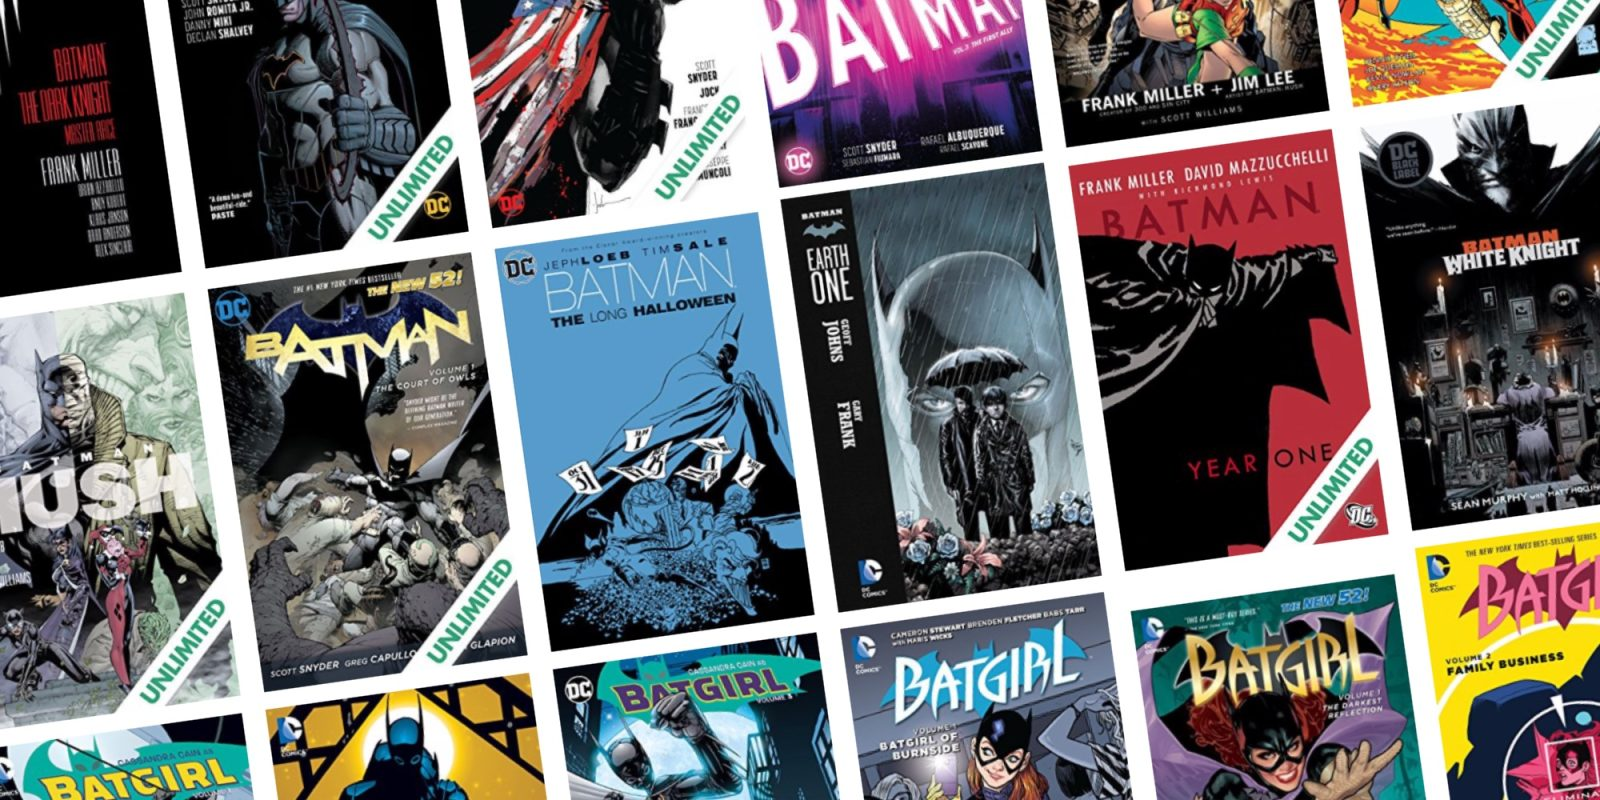 Celebrate Batman Day with up to 89% off graphic novels at ComiXology, more